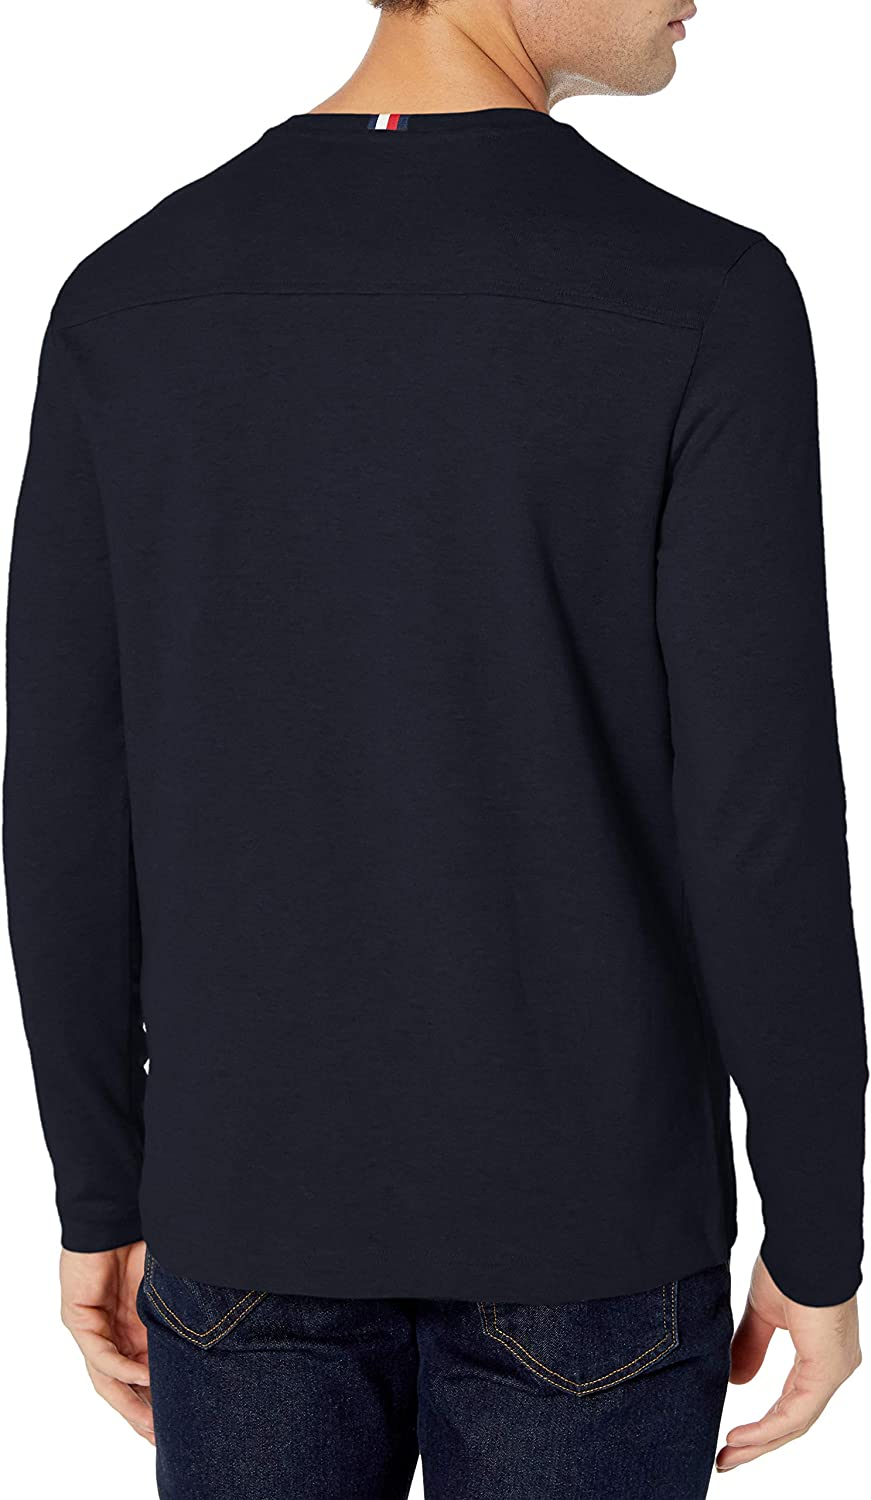 Tommy Hilfiger Mens Long Sleeve Cotton T Shirt T-Shirt